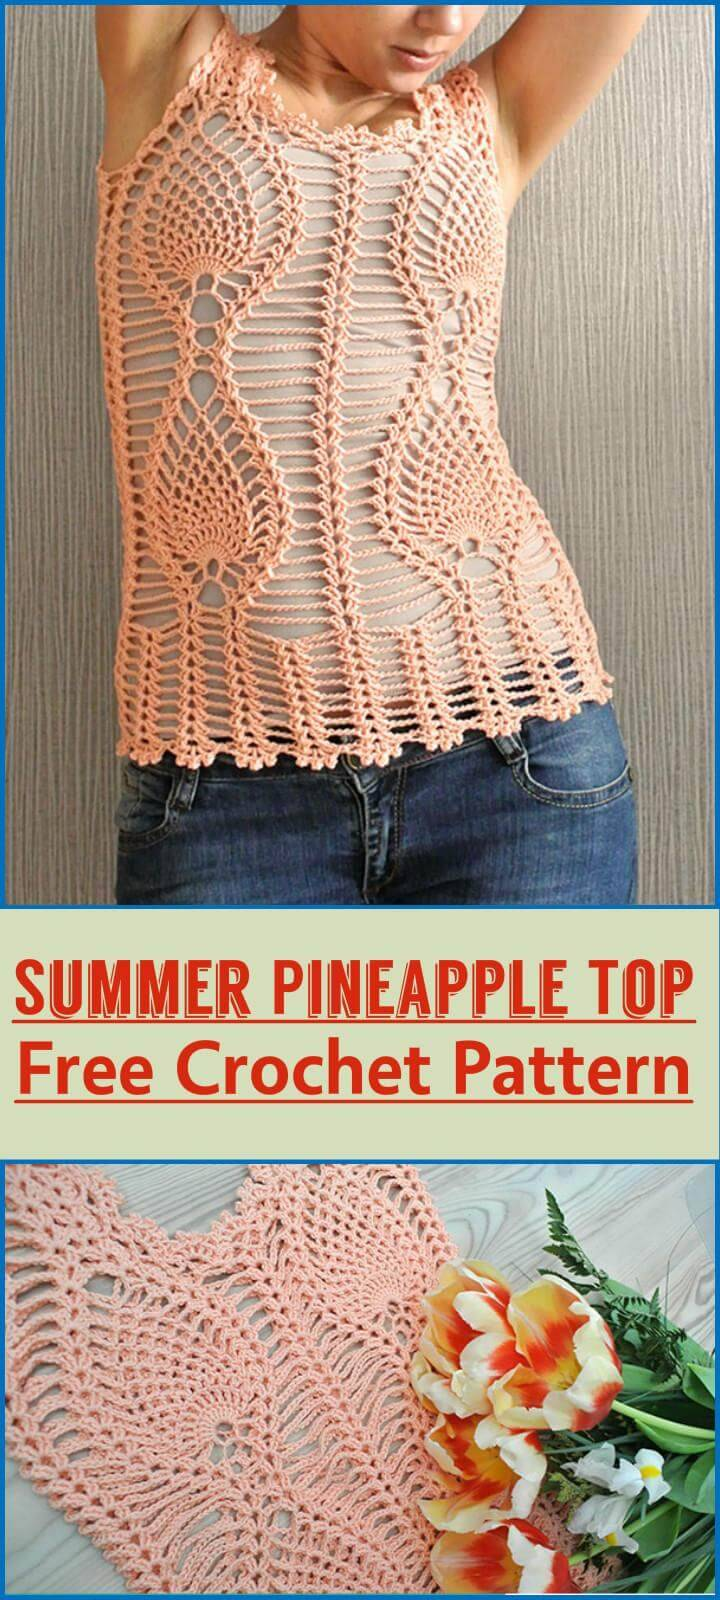 Summer Pineapple Top Free Crochet Pattern